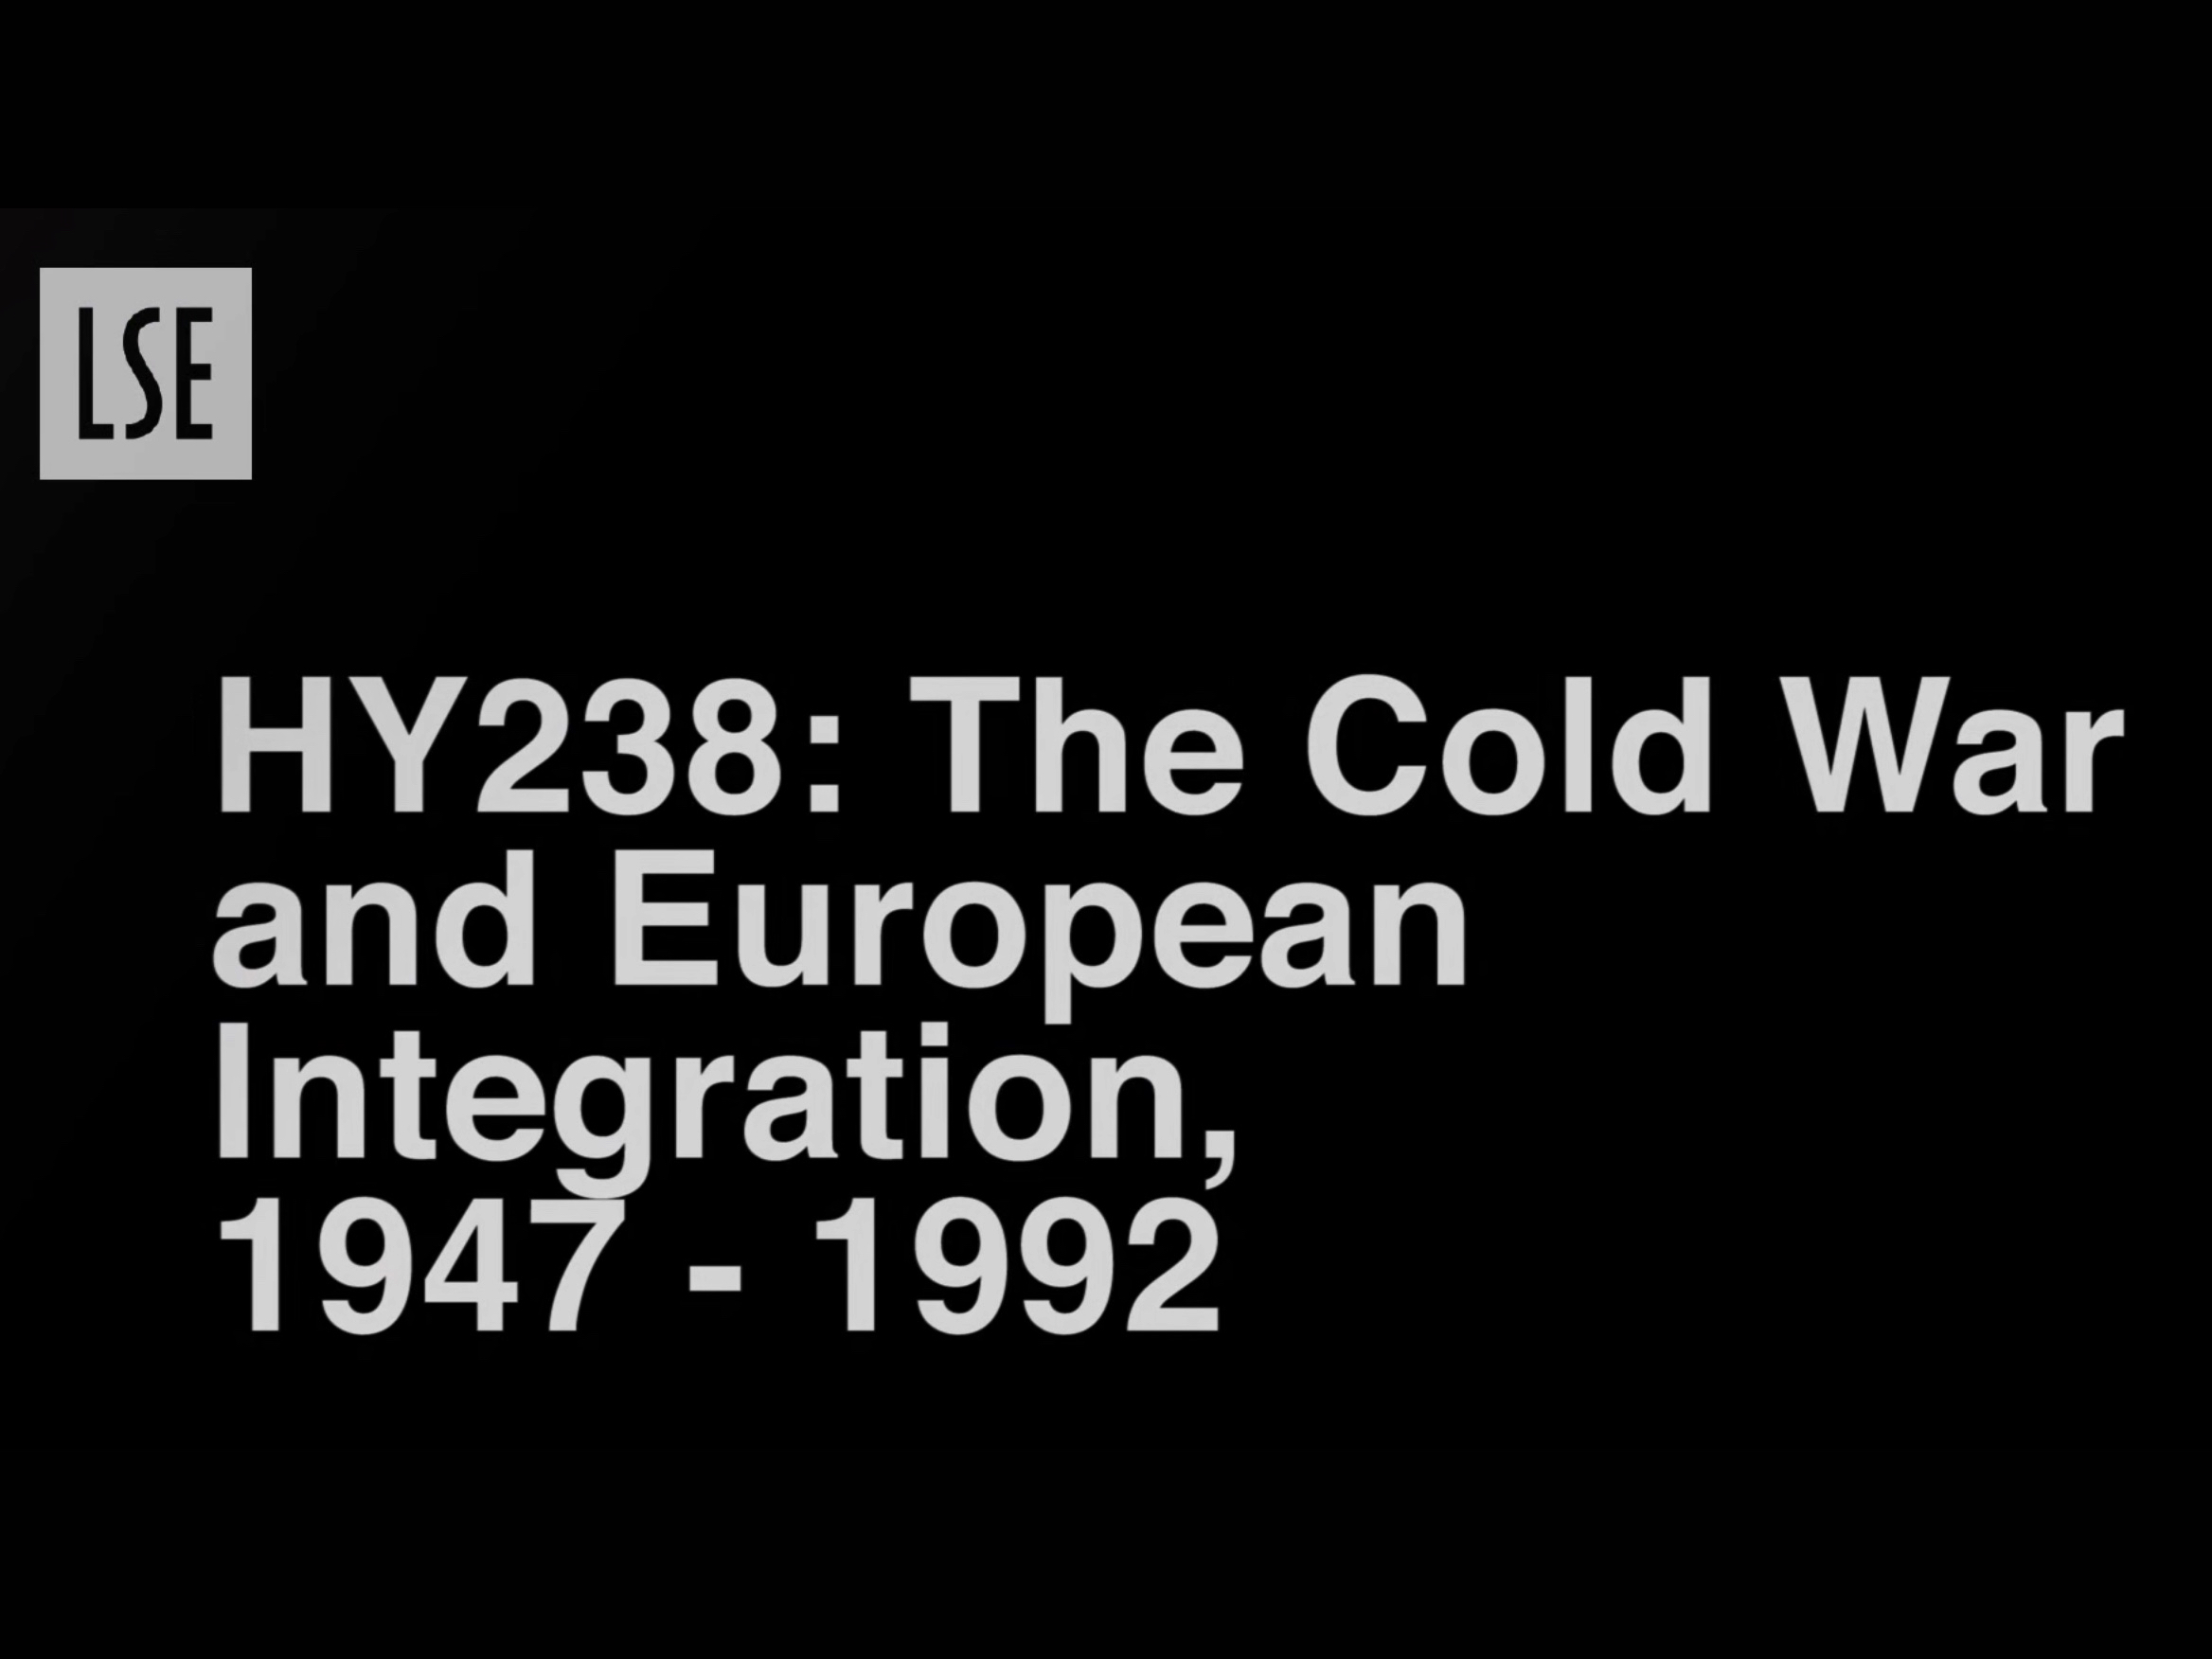 HY238: The Cold War and European Integration, 1947-1992